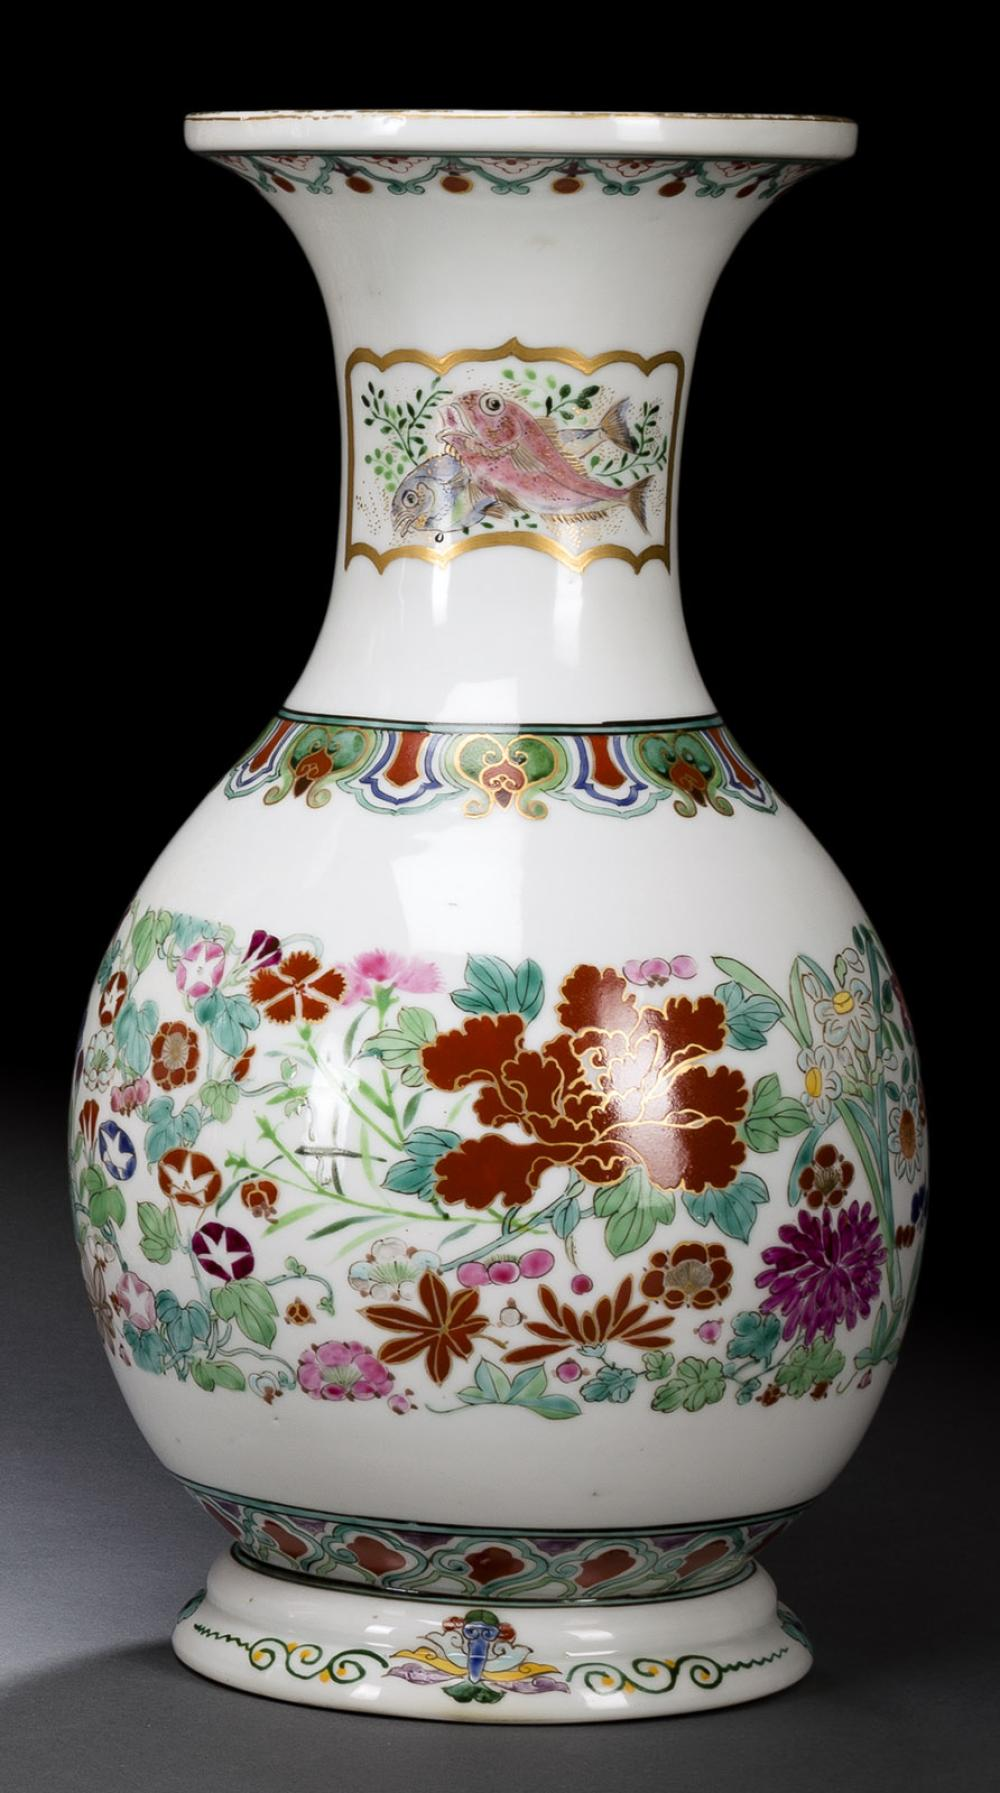 A KUTANI PORCELAIN VASE WITH FLORAL DECORATION AND TWO MEDALLIONS CONTAINING FISH MOTIVES